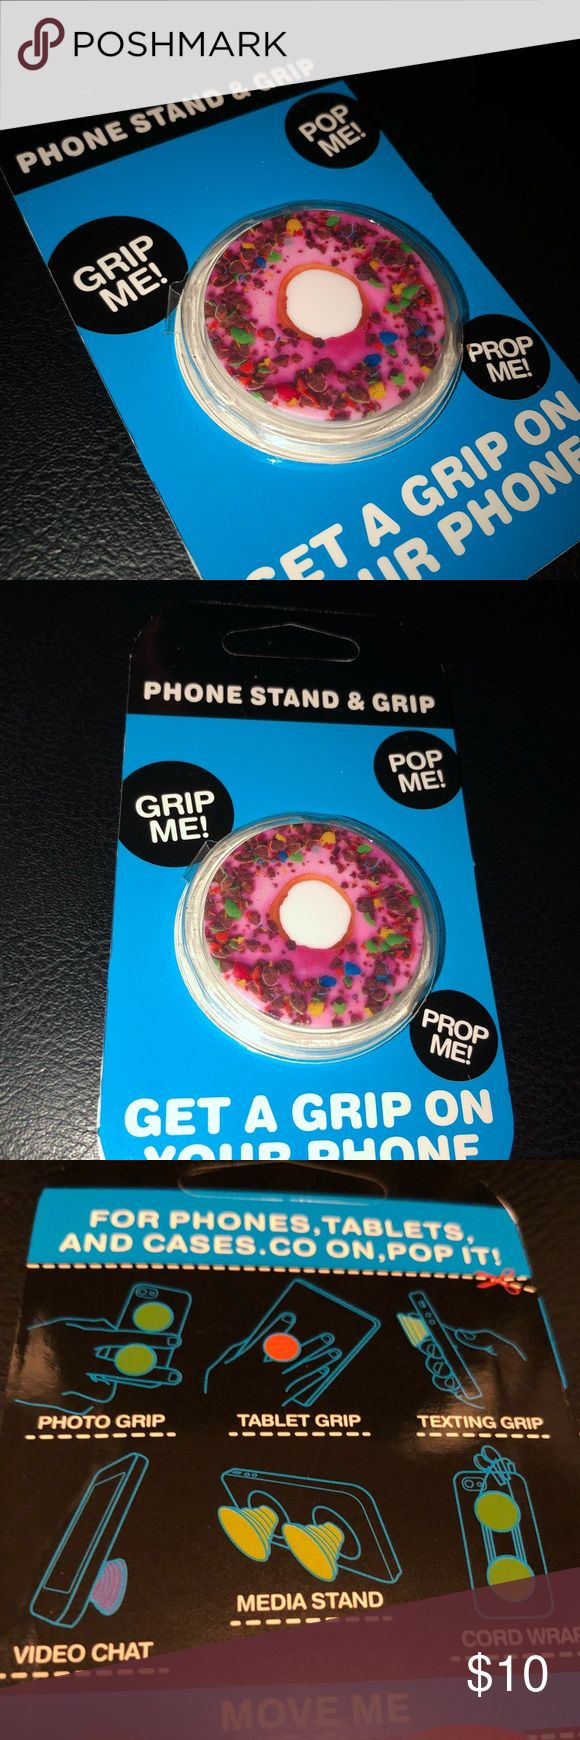 Donut Popsocket🍩 The Popsocket! Perfect to use as a grip for any device such as phones and tablets. We are open to negotiations and reasonable offers! ‼️Buy 2 and get 1 free‼️ Checkout my closet for more designs! Accessories